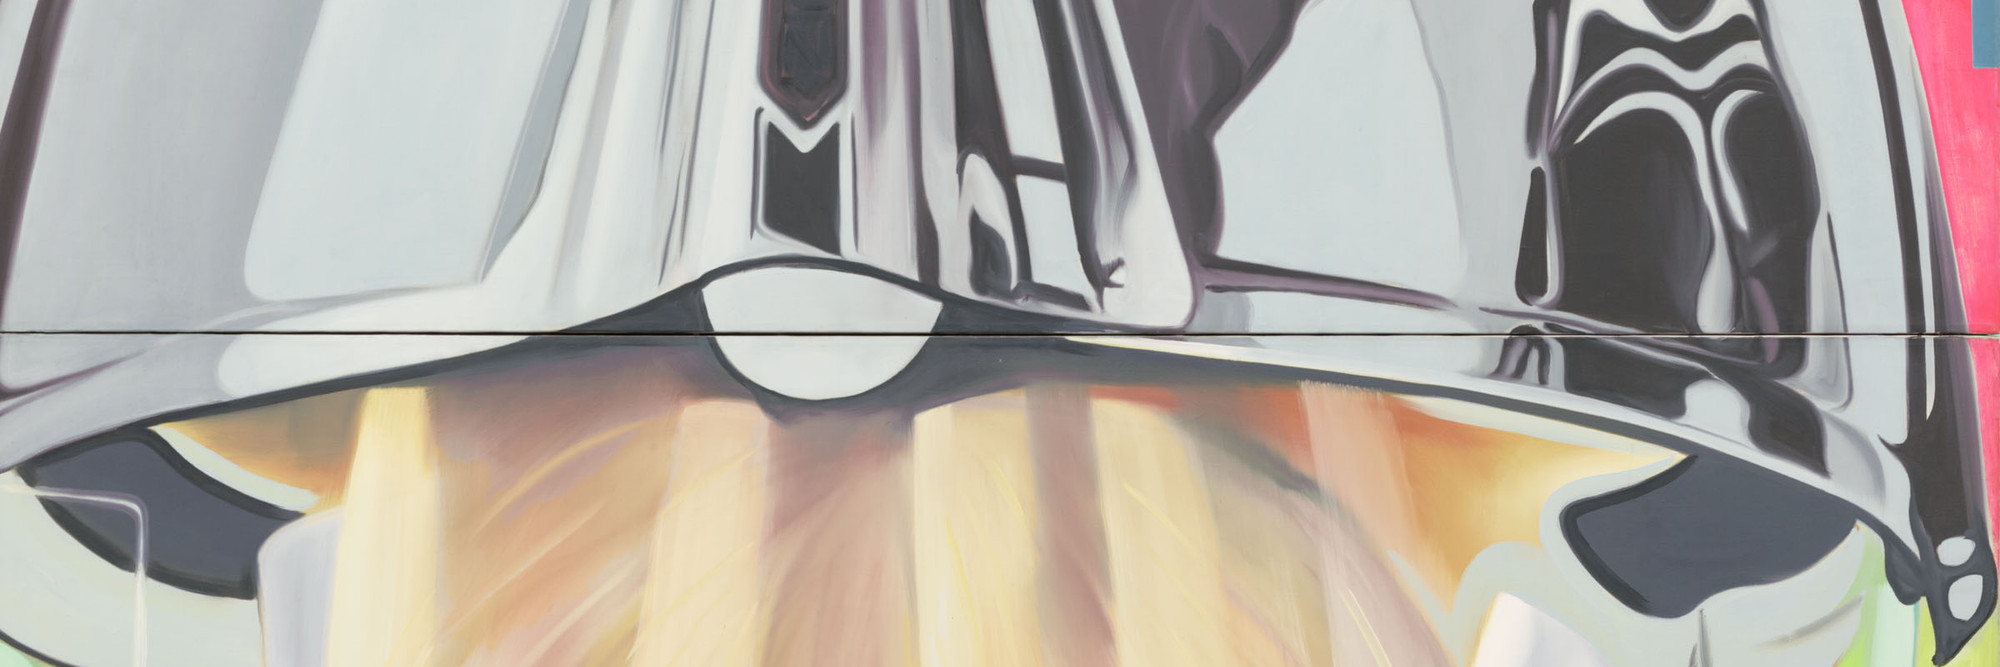 James Rosenquist. <em>F-111</em> (detail). 1964–65. Oil on canvas with aluminum, 23 sections. 10 x 86' (304.8 x 2621.3 cm). Gift of Mr. and Mrs. Alex L. Hillman and Lillie P. Bliss Bequest (both by exchange). © 2011 James Rosenquist/Licensed by VAGA, New York